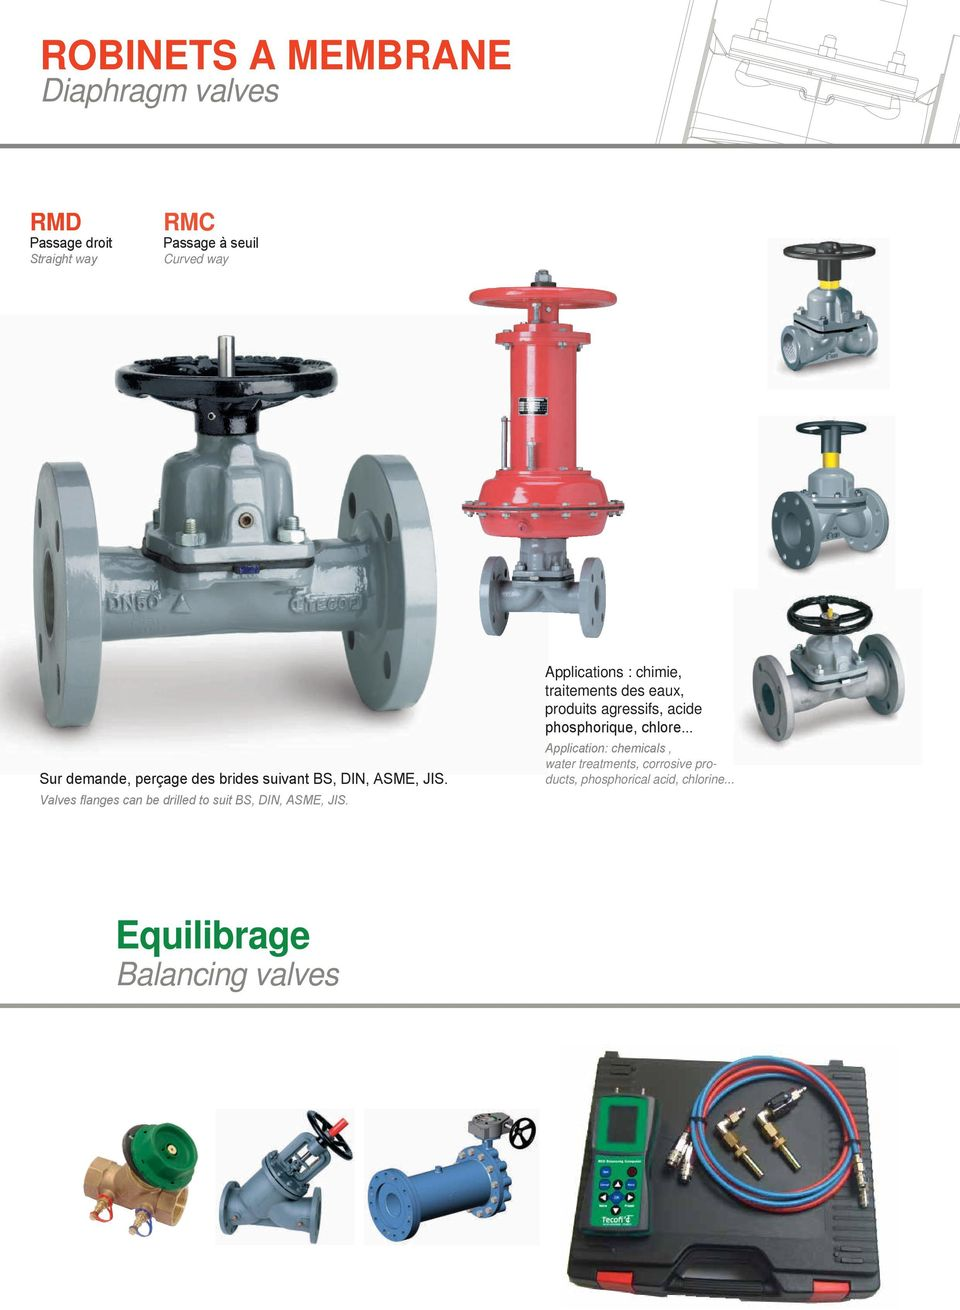 Valves flanges can be drilled to suit BS, DIN, ASME, JIS.